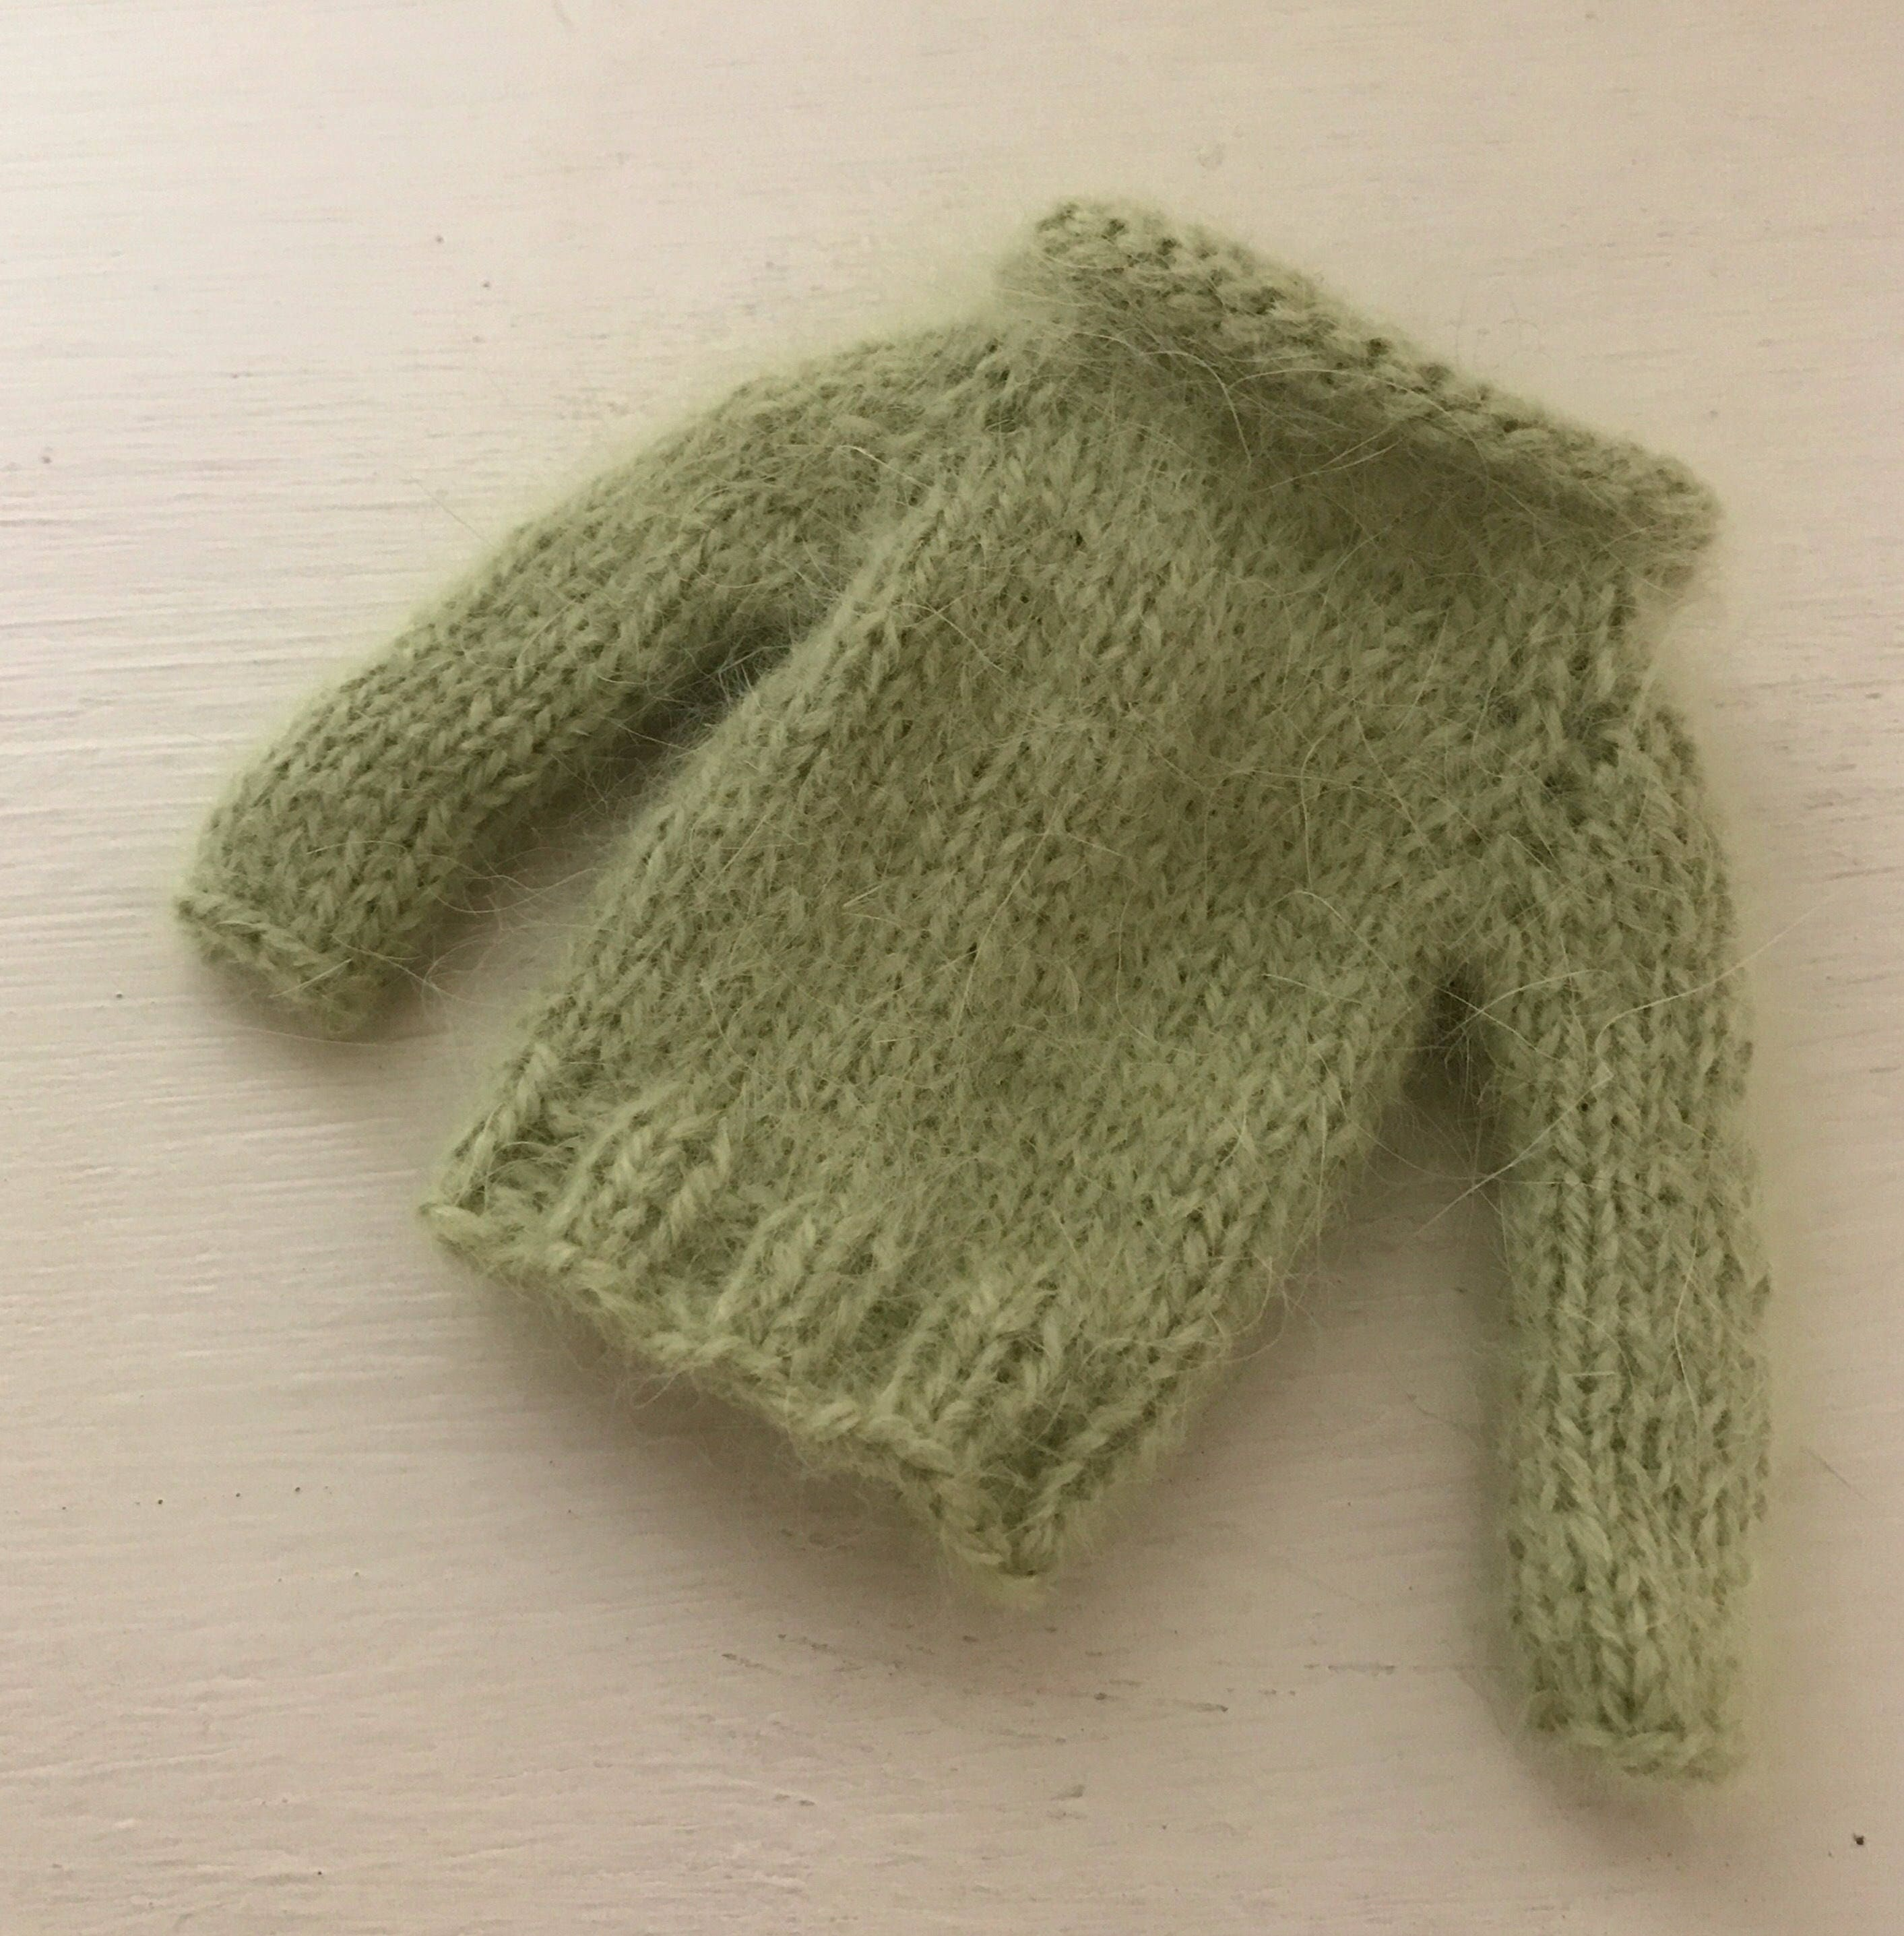 BLYTHE DOLL Apple Green Angora Hand Knitted Sweater Jumper  with Normal Length Sleeves Blythe Dolls Pullip Azone